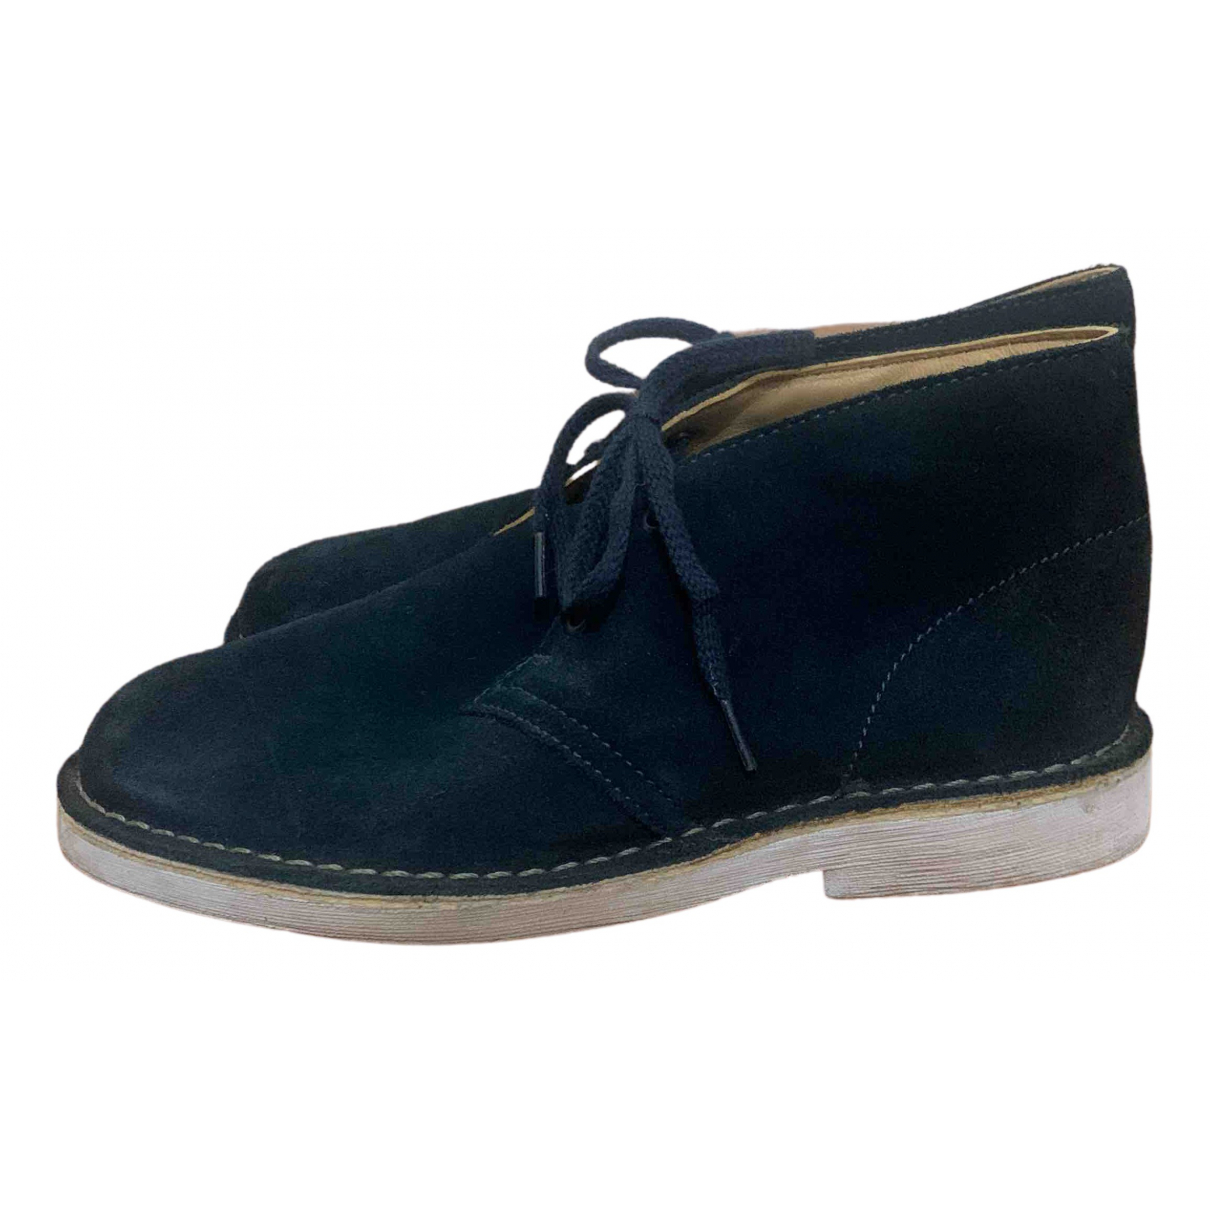 Clarks N Blue Suede Lace up boots for Kids 2 UK